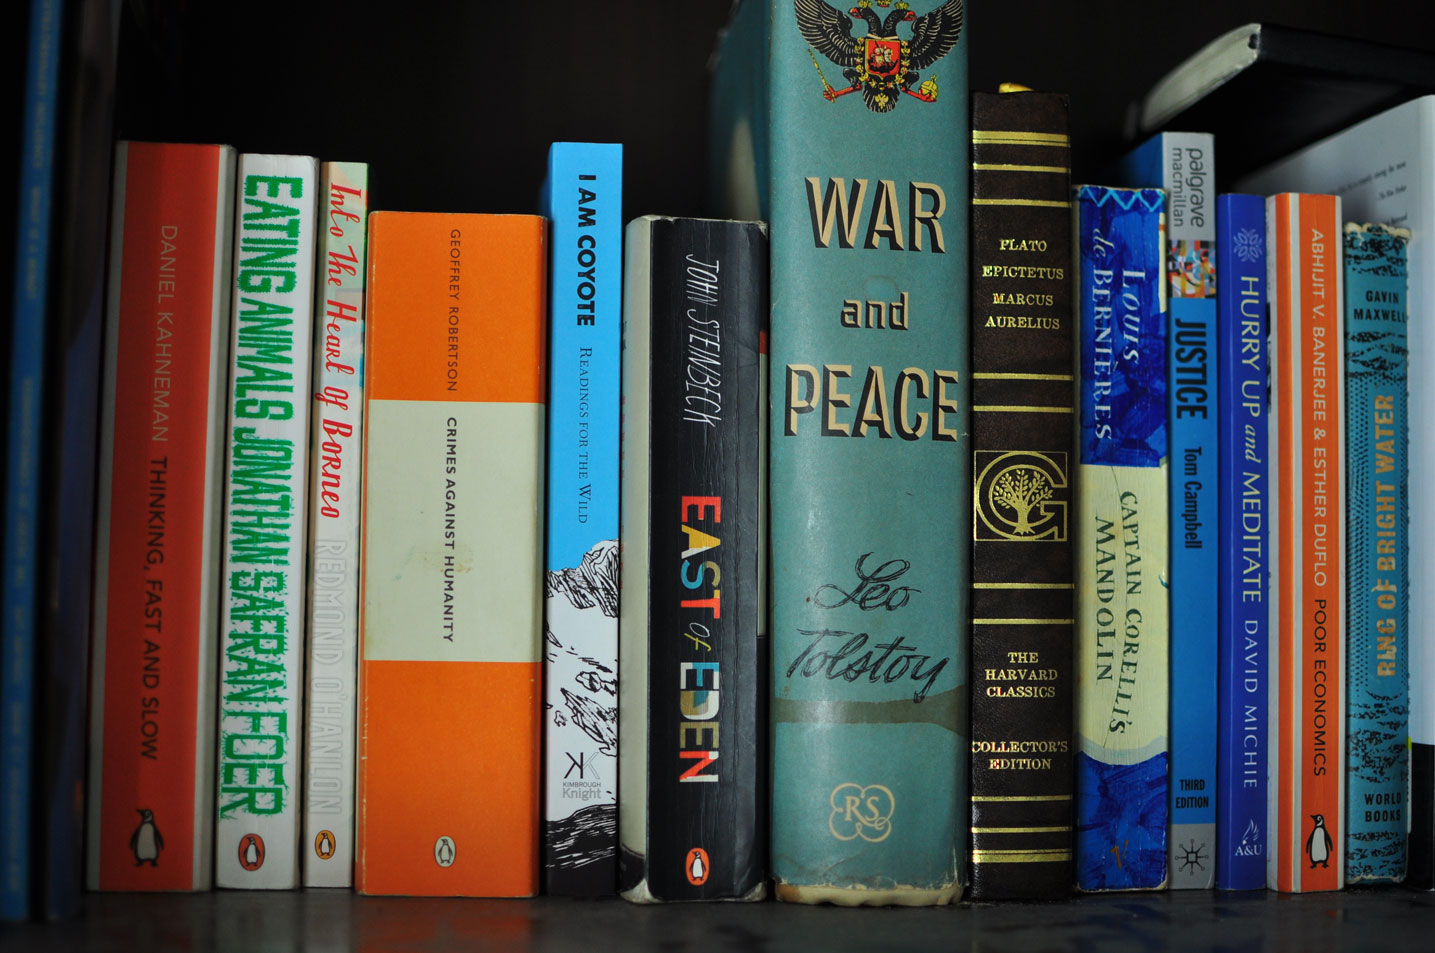 Book sitting in a book shelf with other classics like War and Peace and East of Eden